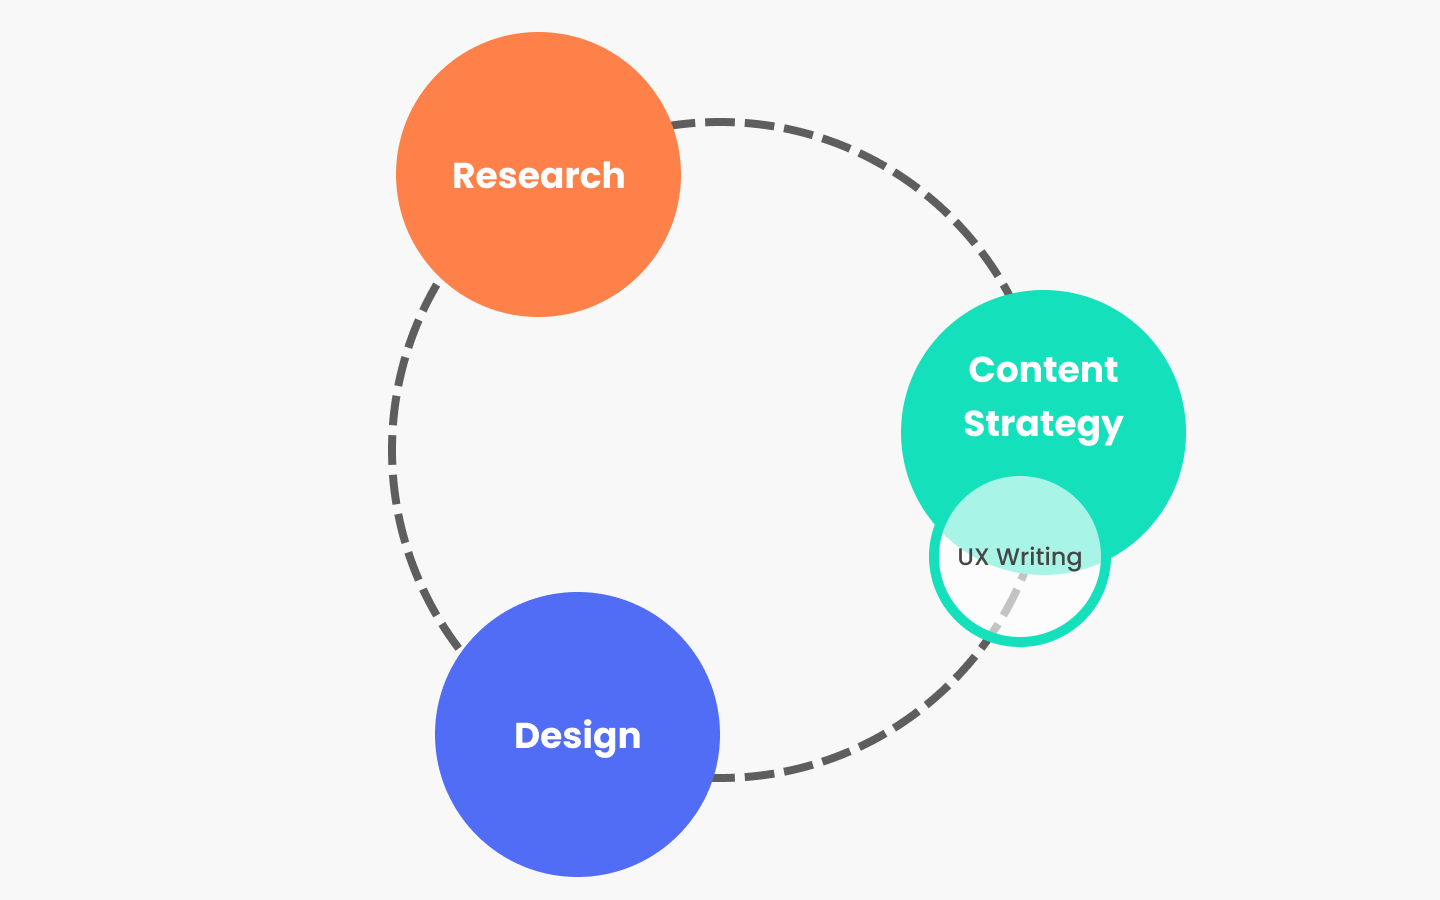 How research, content strategy and design are connected